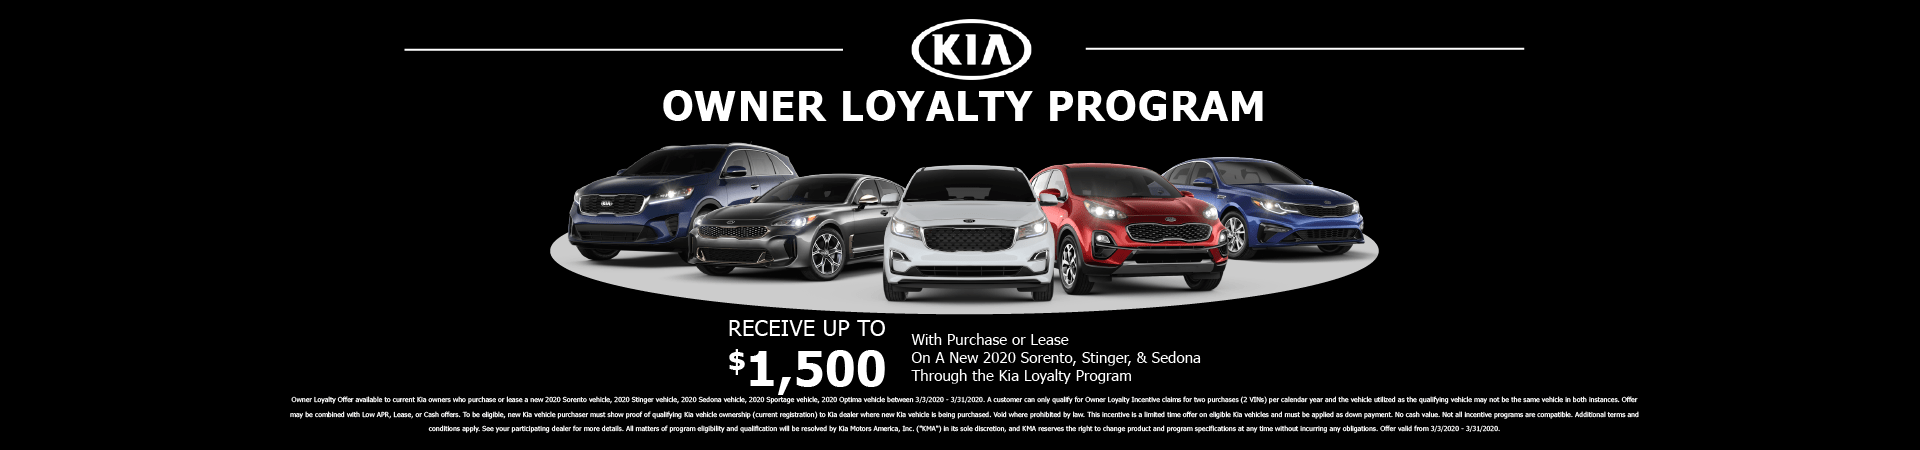 Kia Owner Loyalty